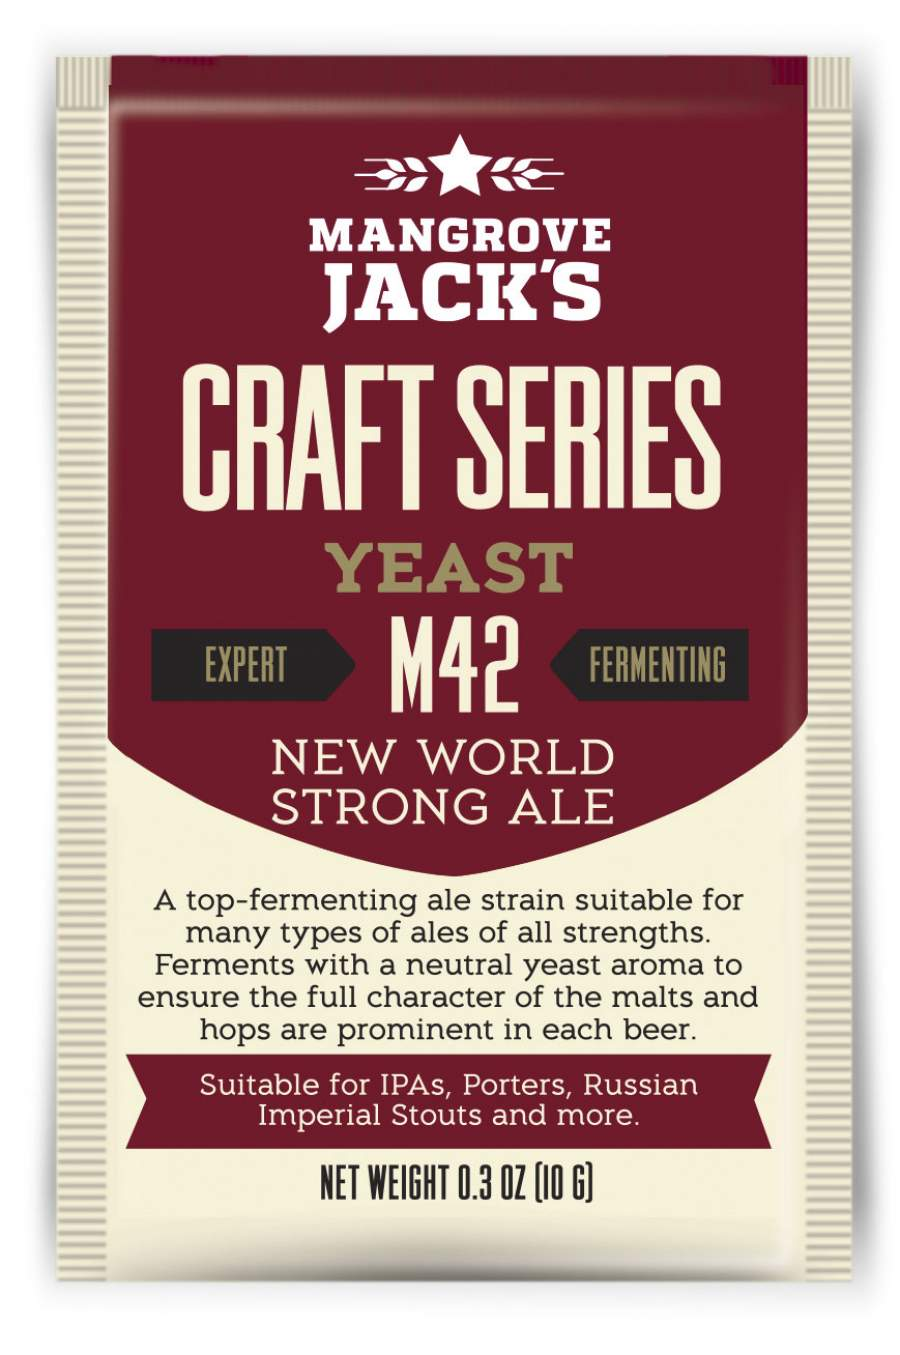 New World Strong Ale M42 - Mangrove Jack's Craft Series - 10 g